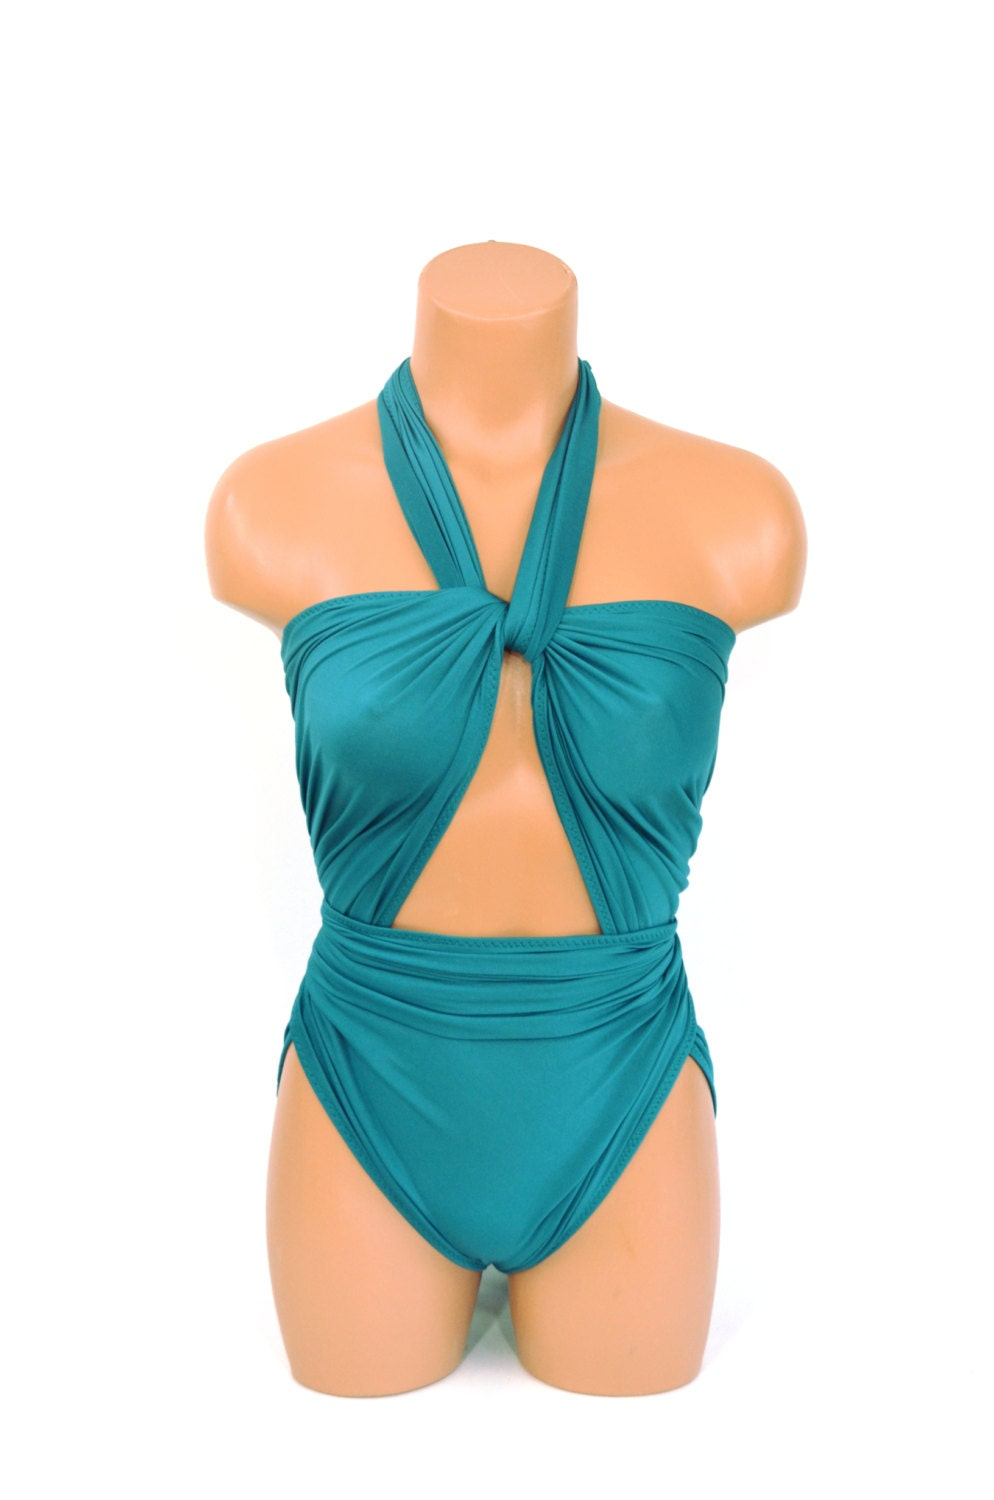 637cf708912 Bathing Suit XL Turquoise Green Wrap Around Swimsuit One Wrap